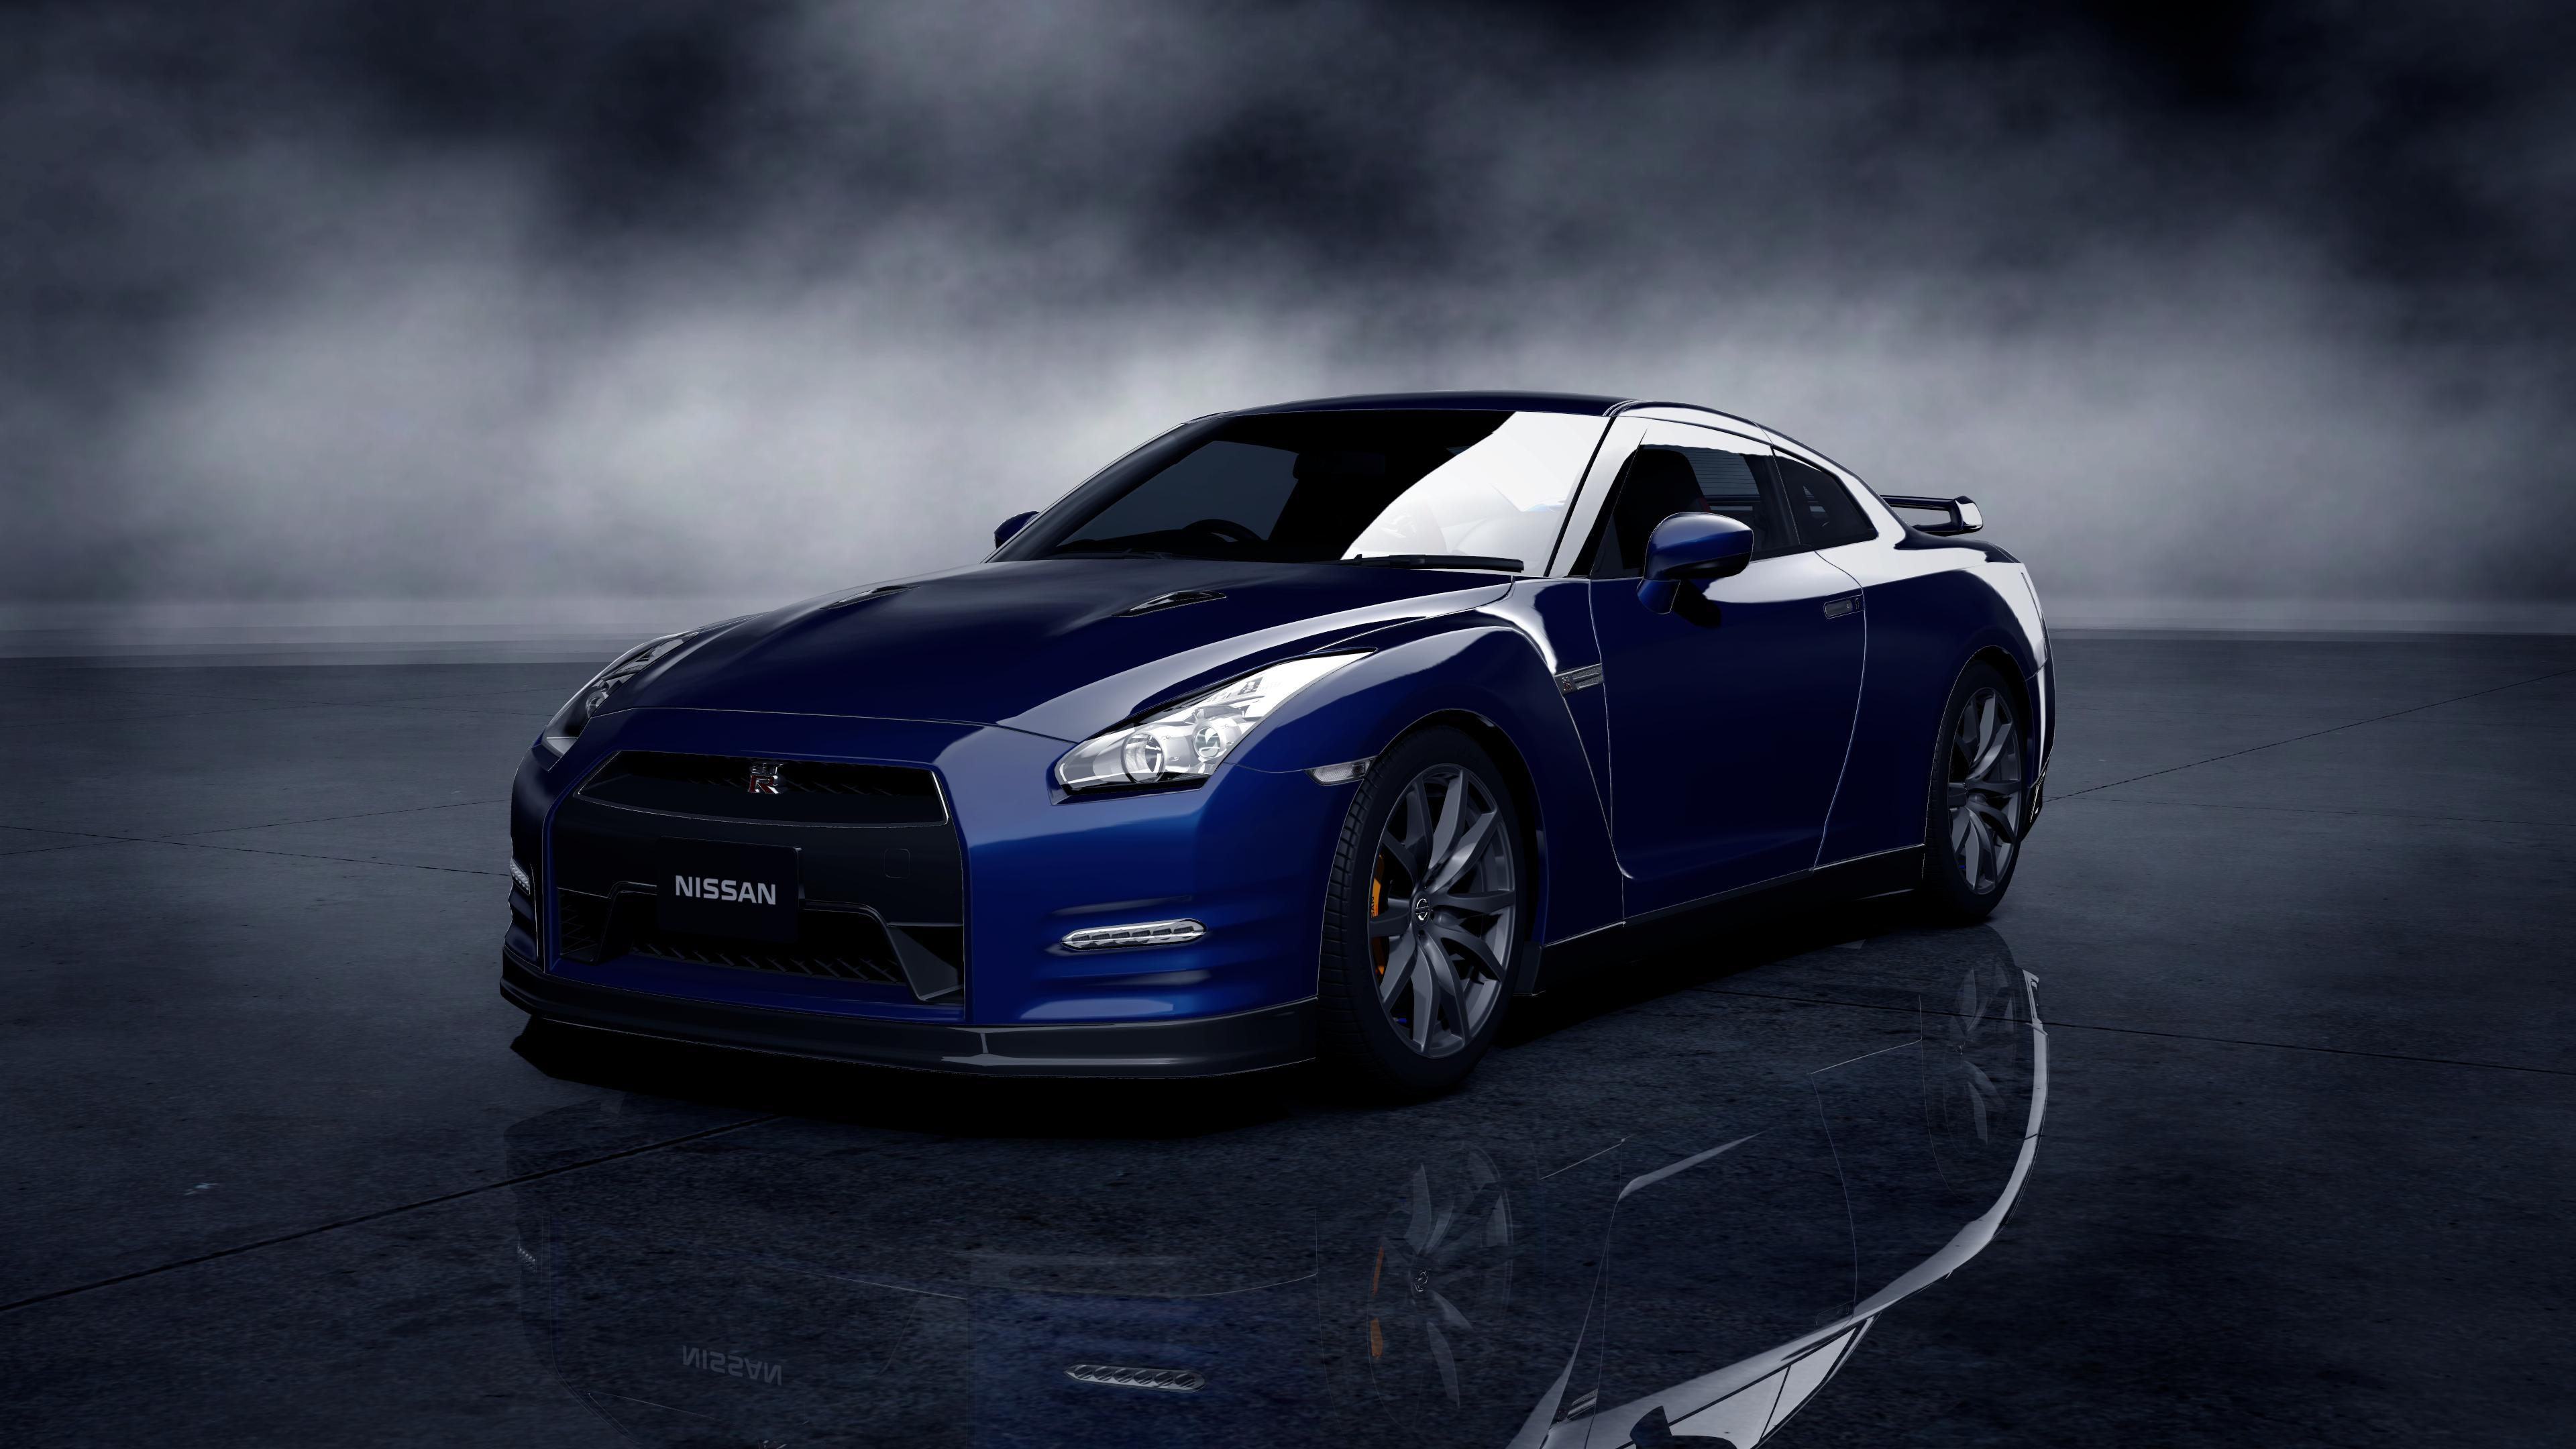 coolest gtr wallpapers - photo #32